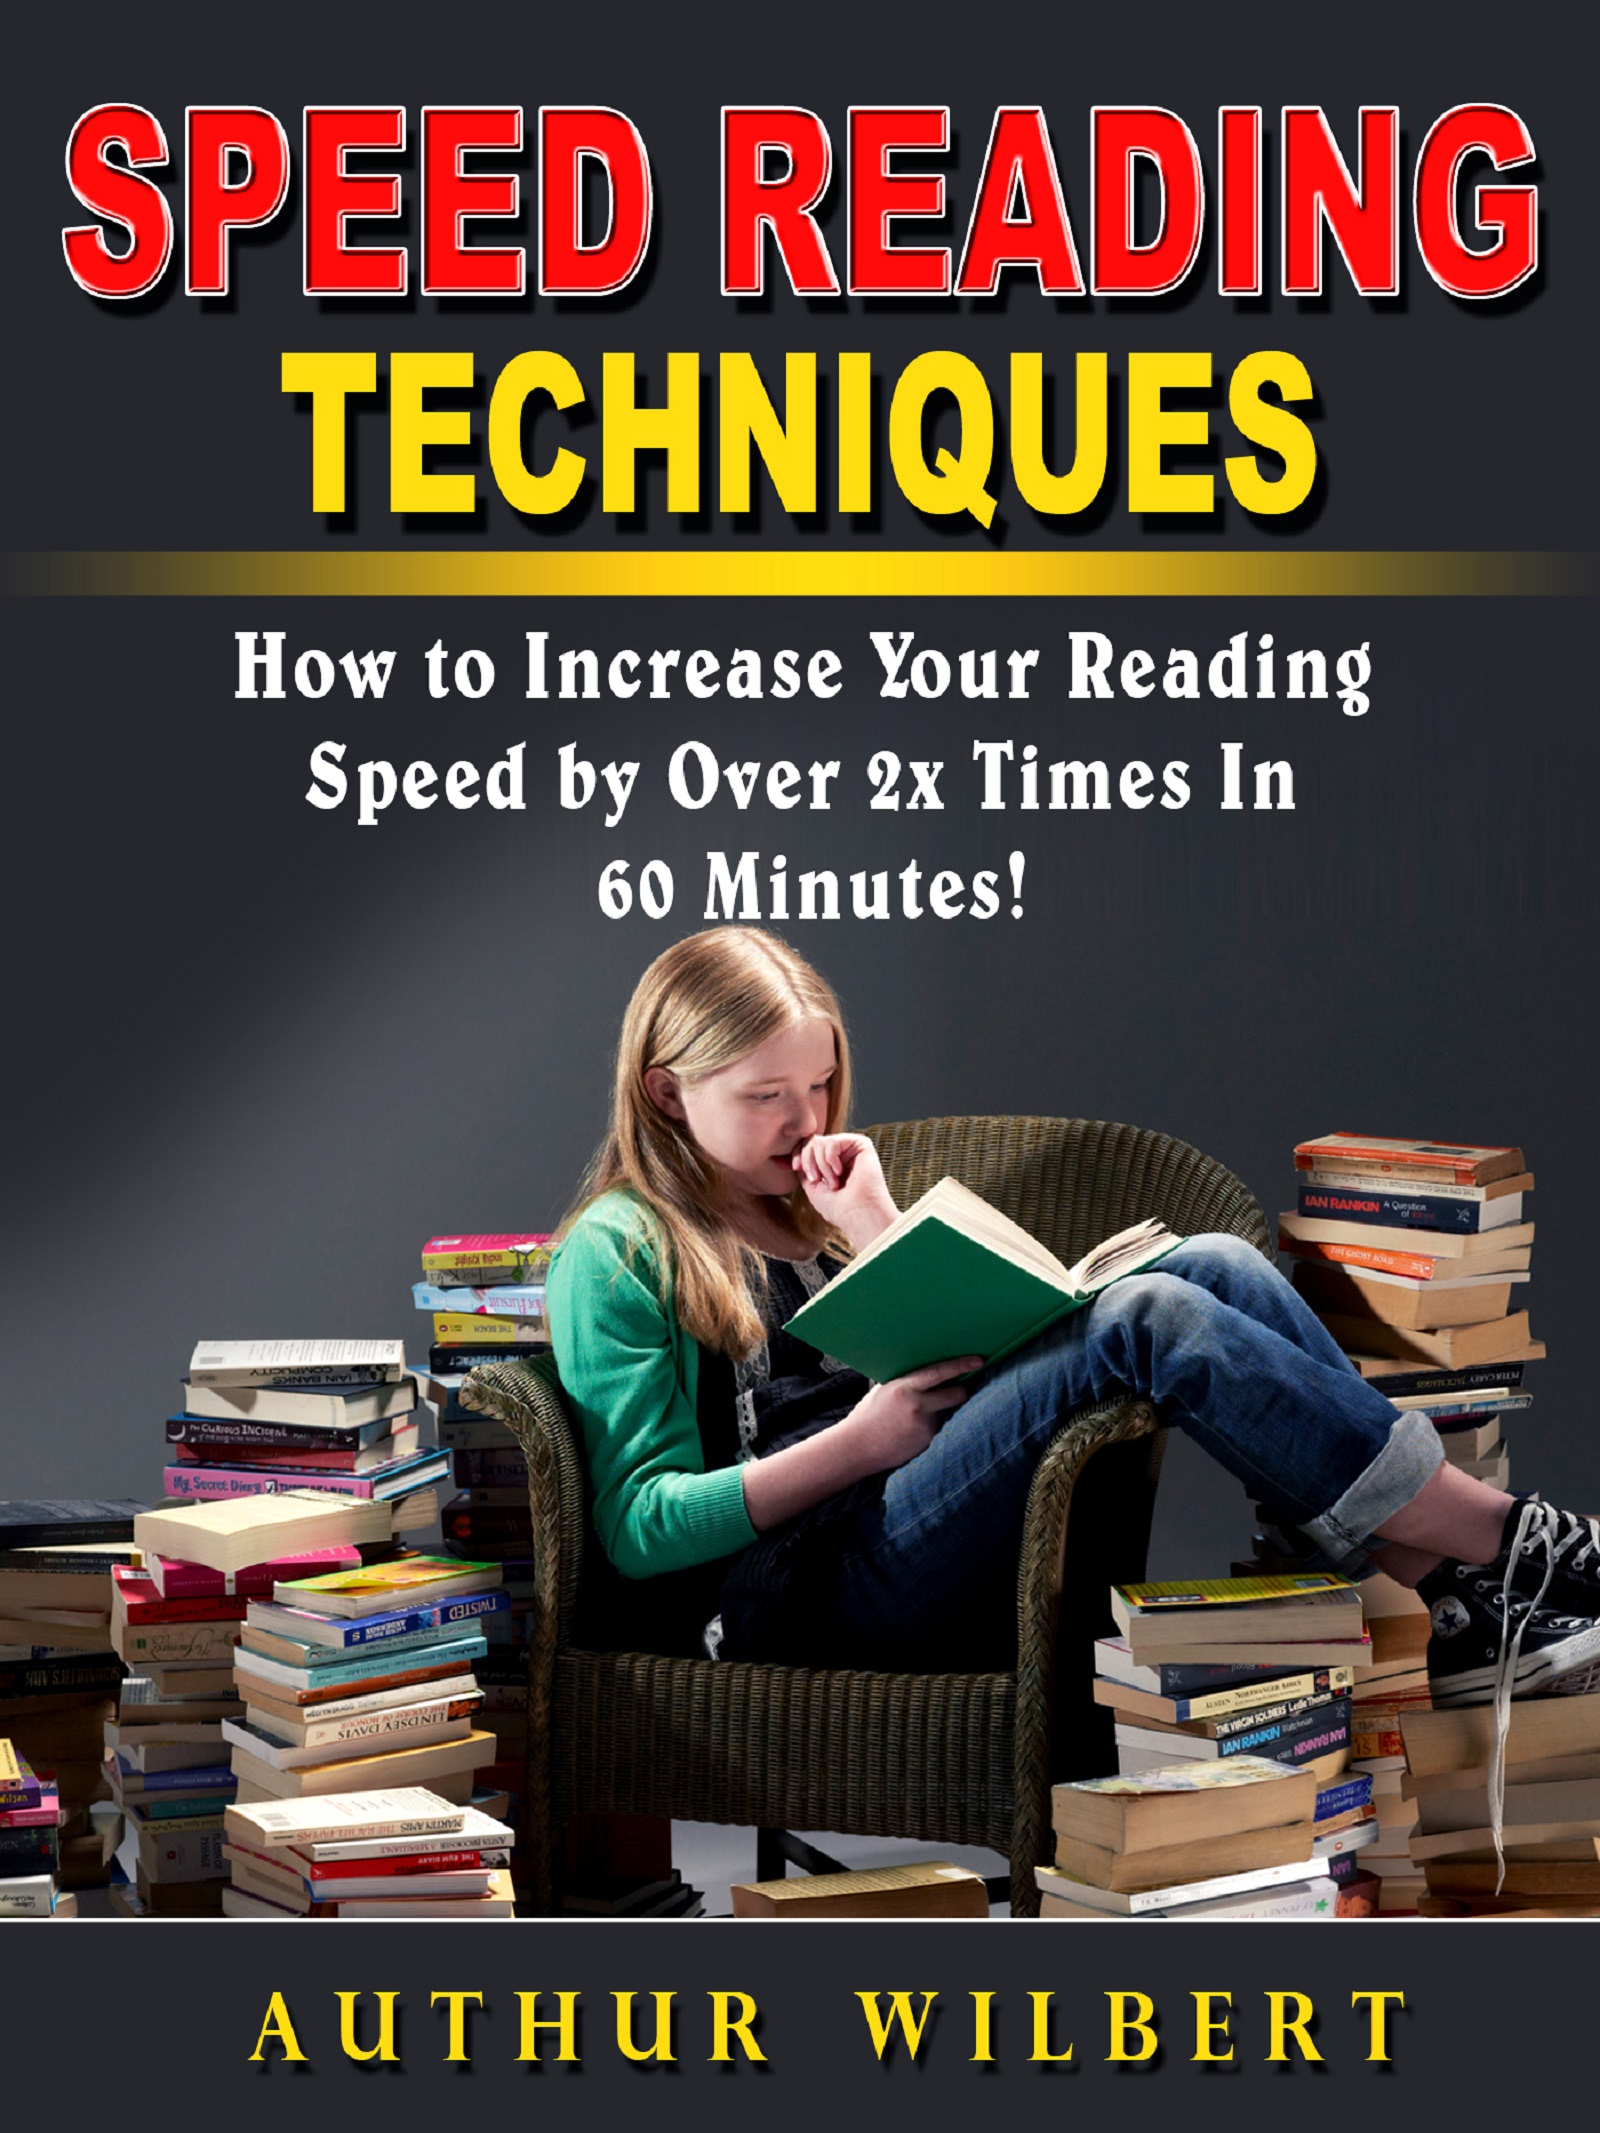 Speed reading techniques: how to incrase your reading speed by over 2 times in 60 minutes!